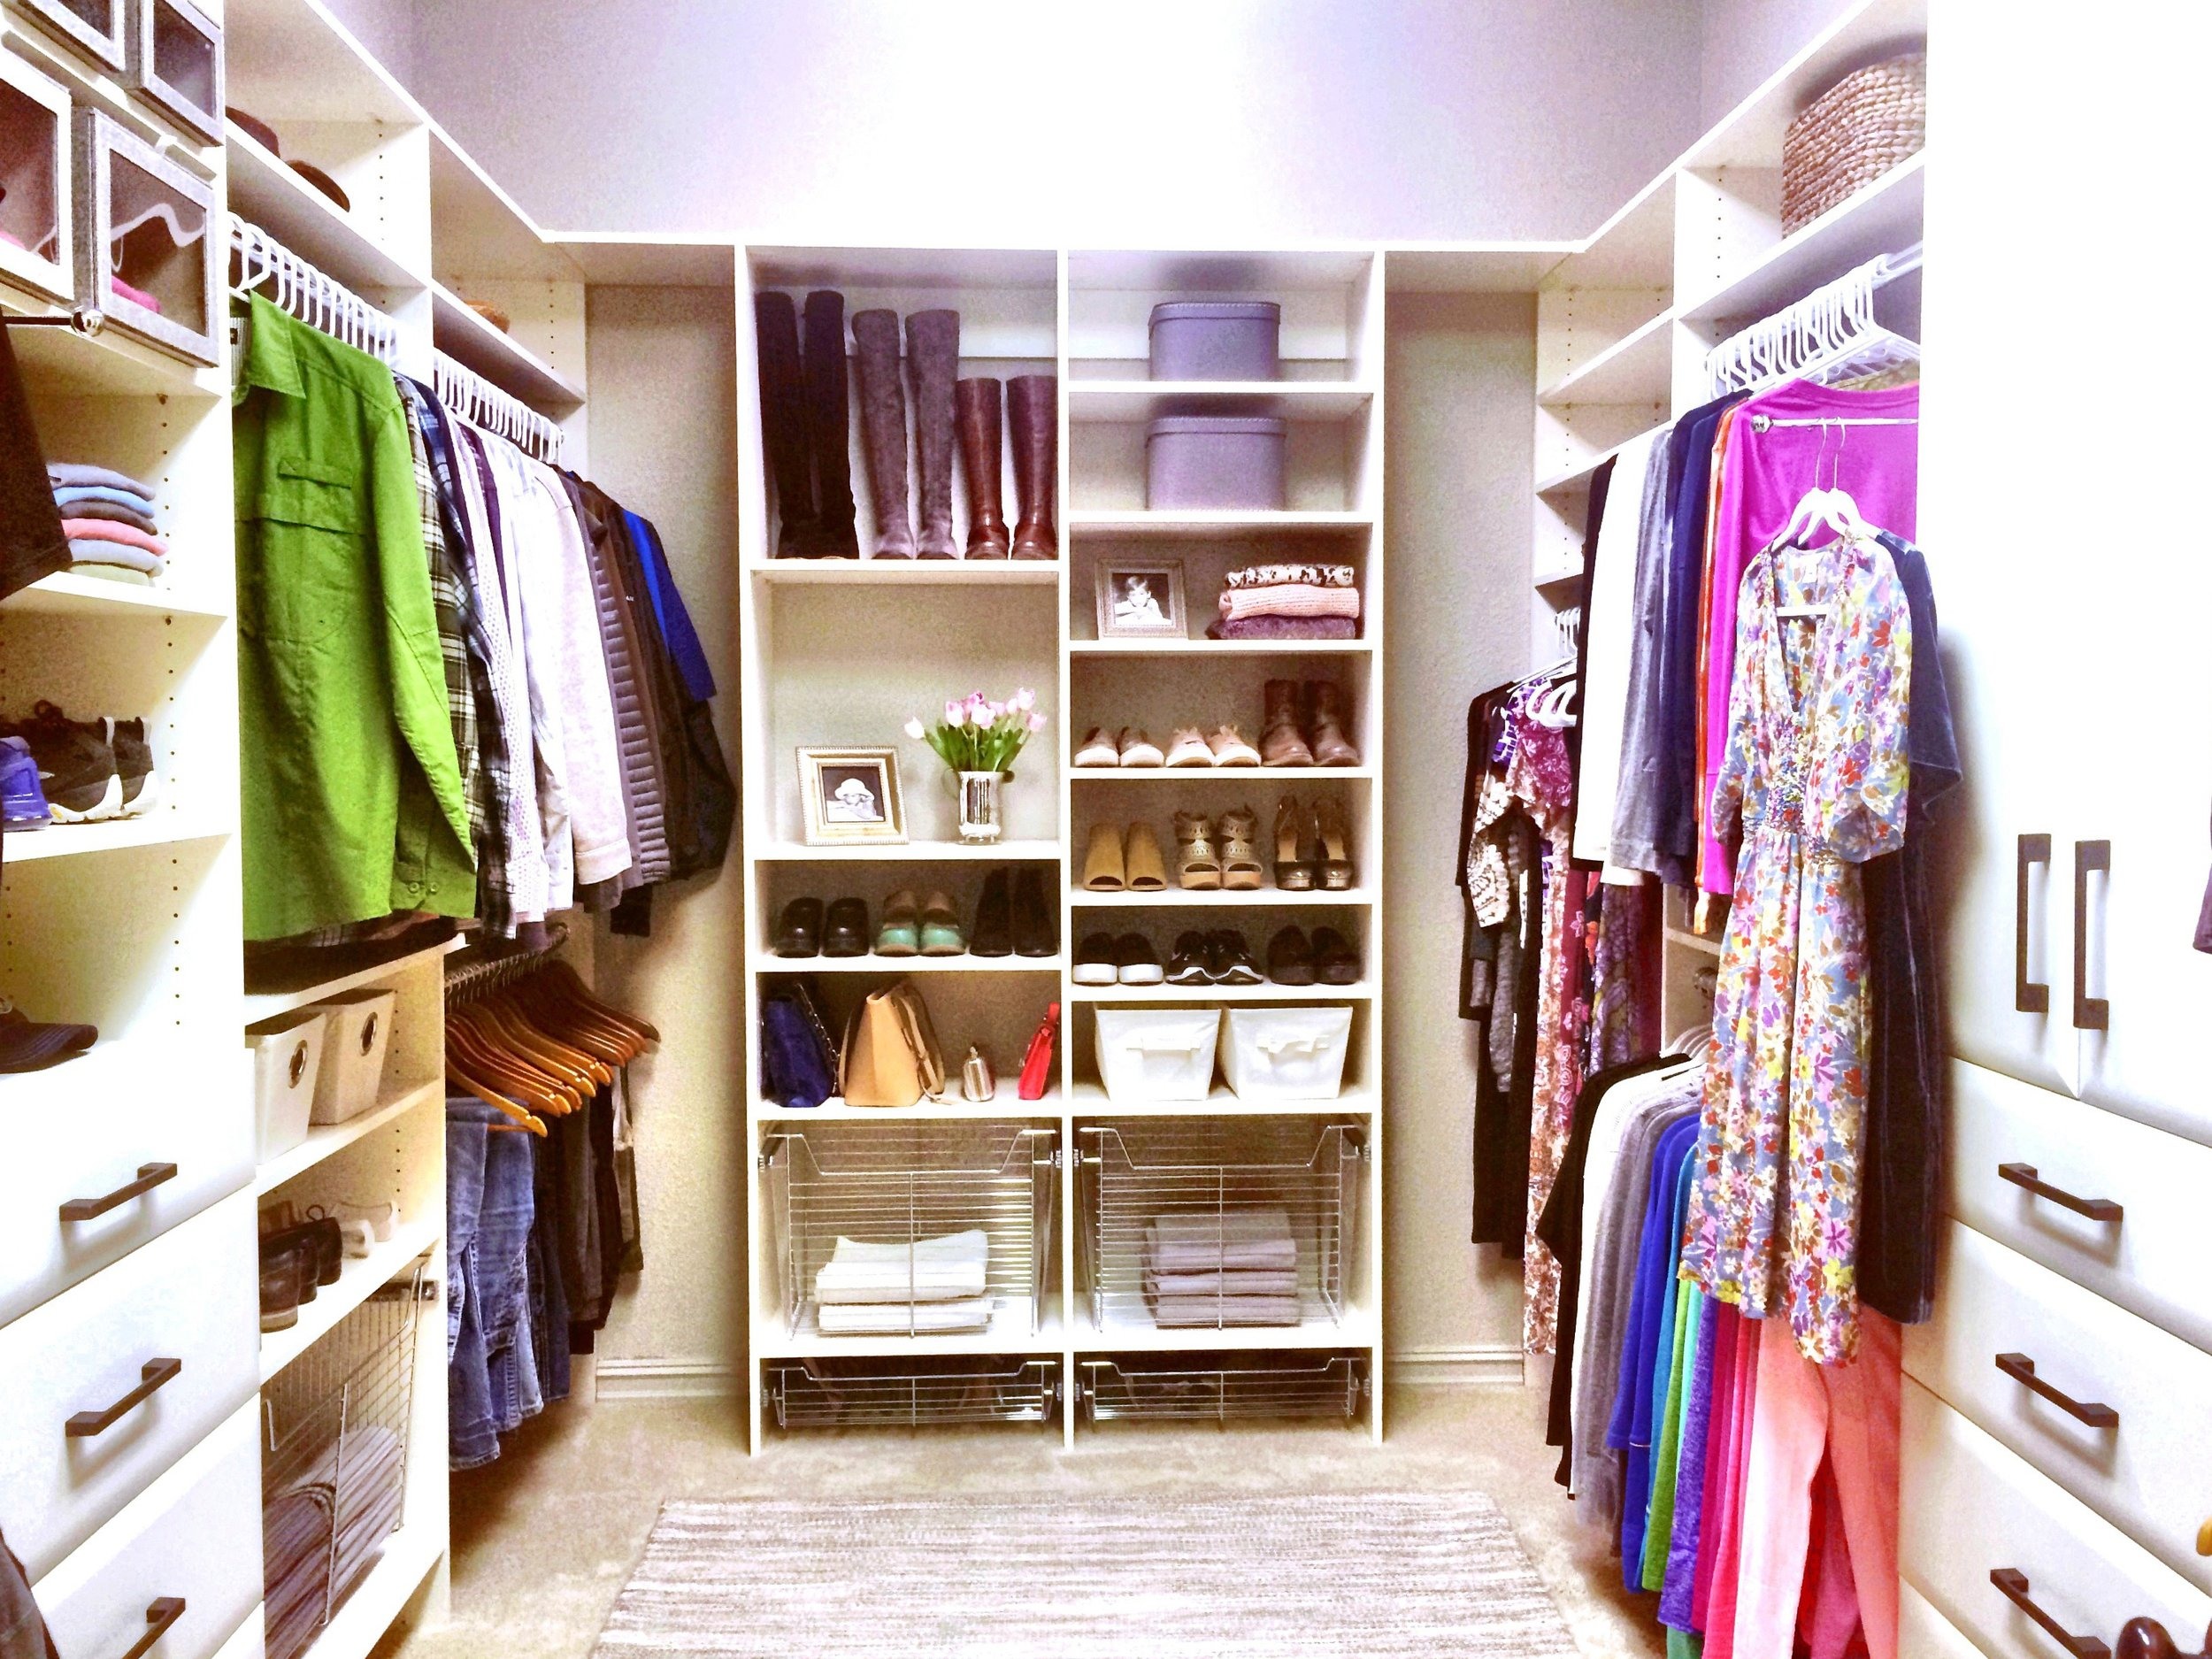 Walk In Closet Organizer by Closets of Tulsa